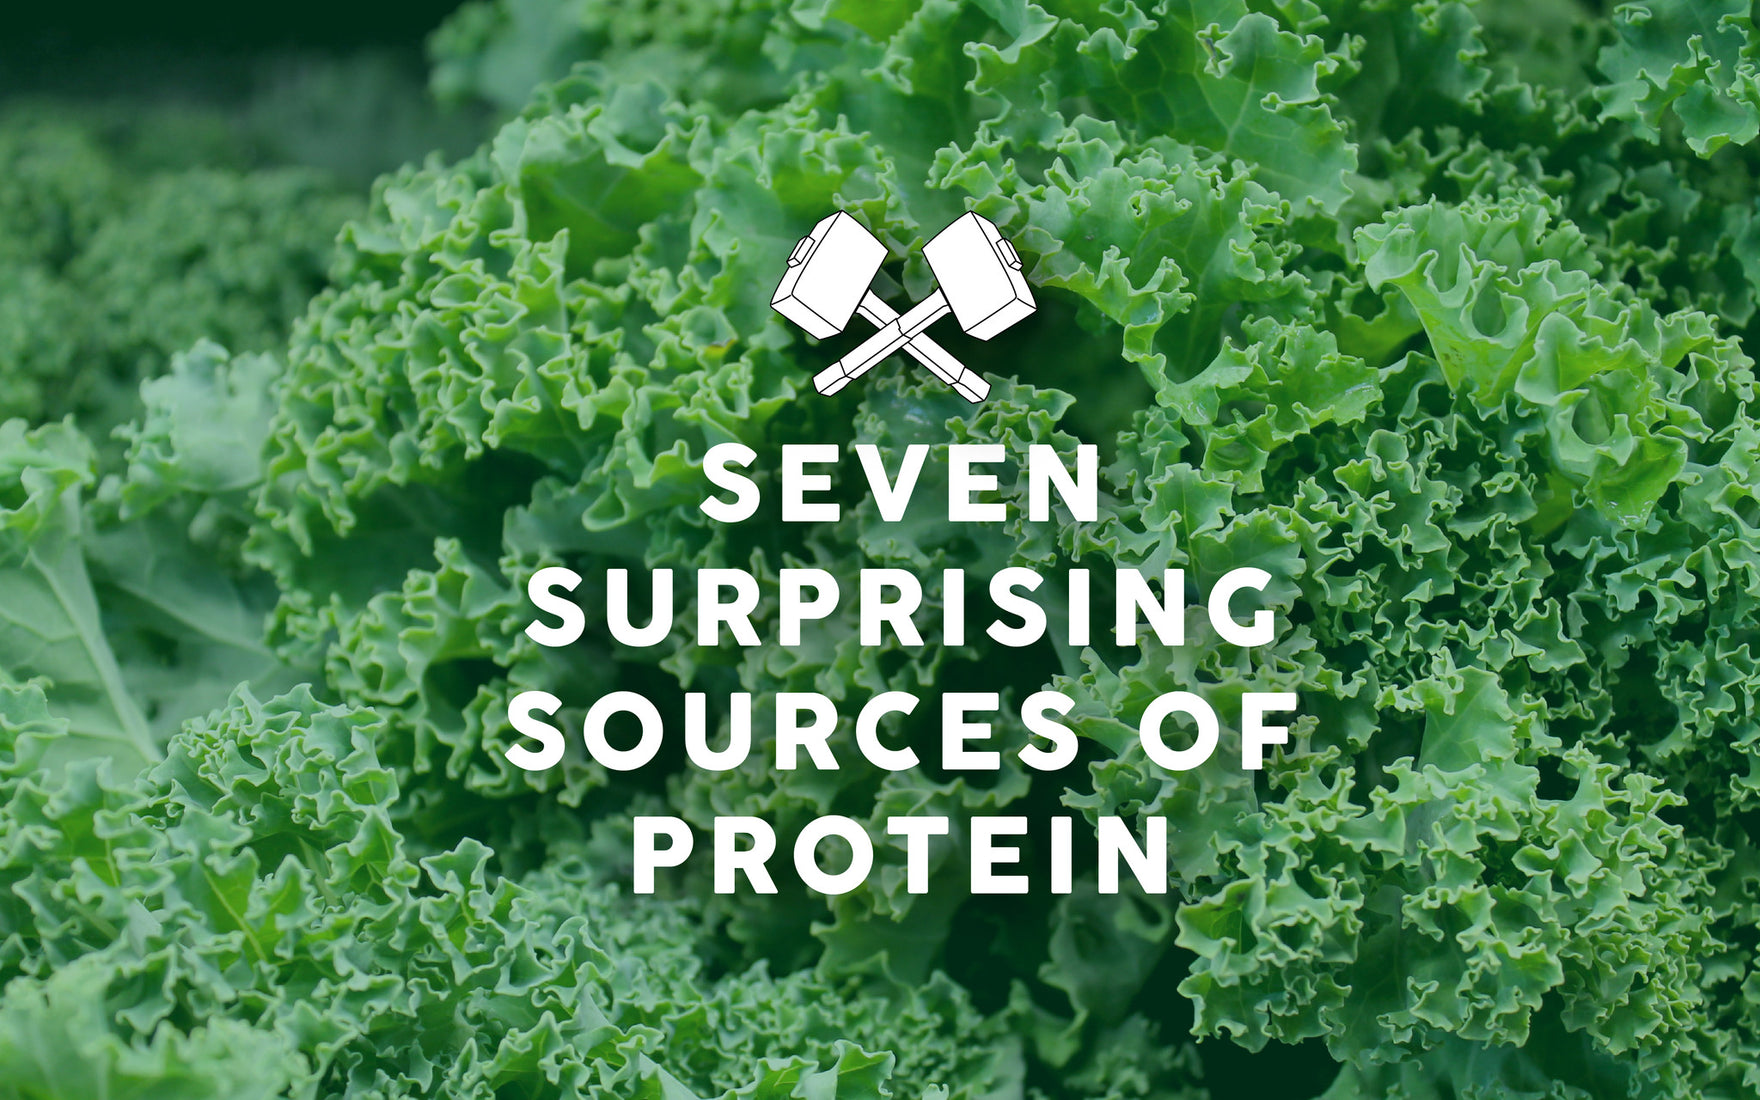 7 Surprising Plant Protein Sources